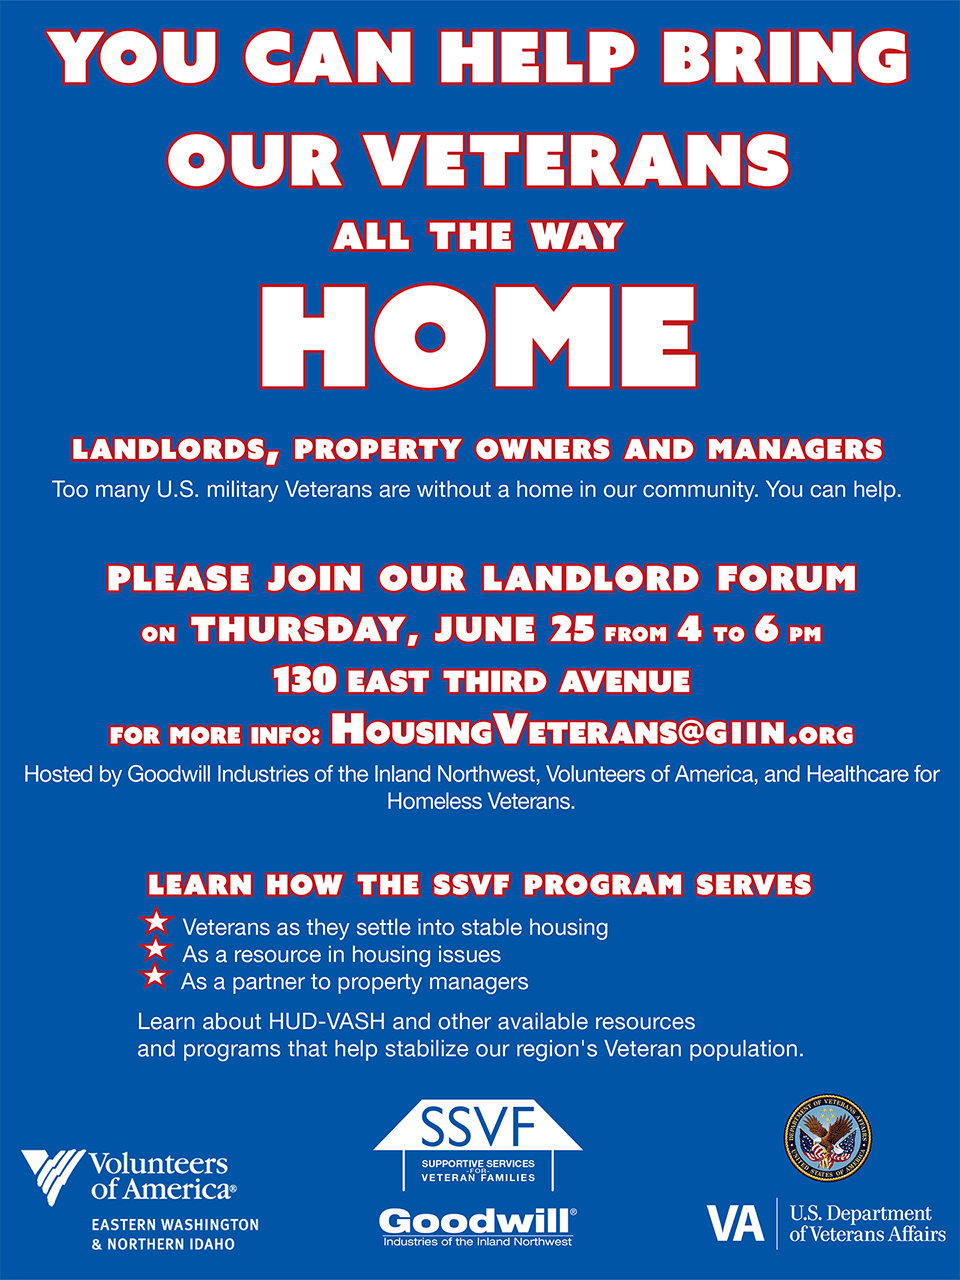 Help Bring Our Veterans All the Way Home Flyer